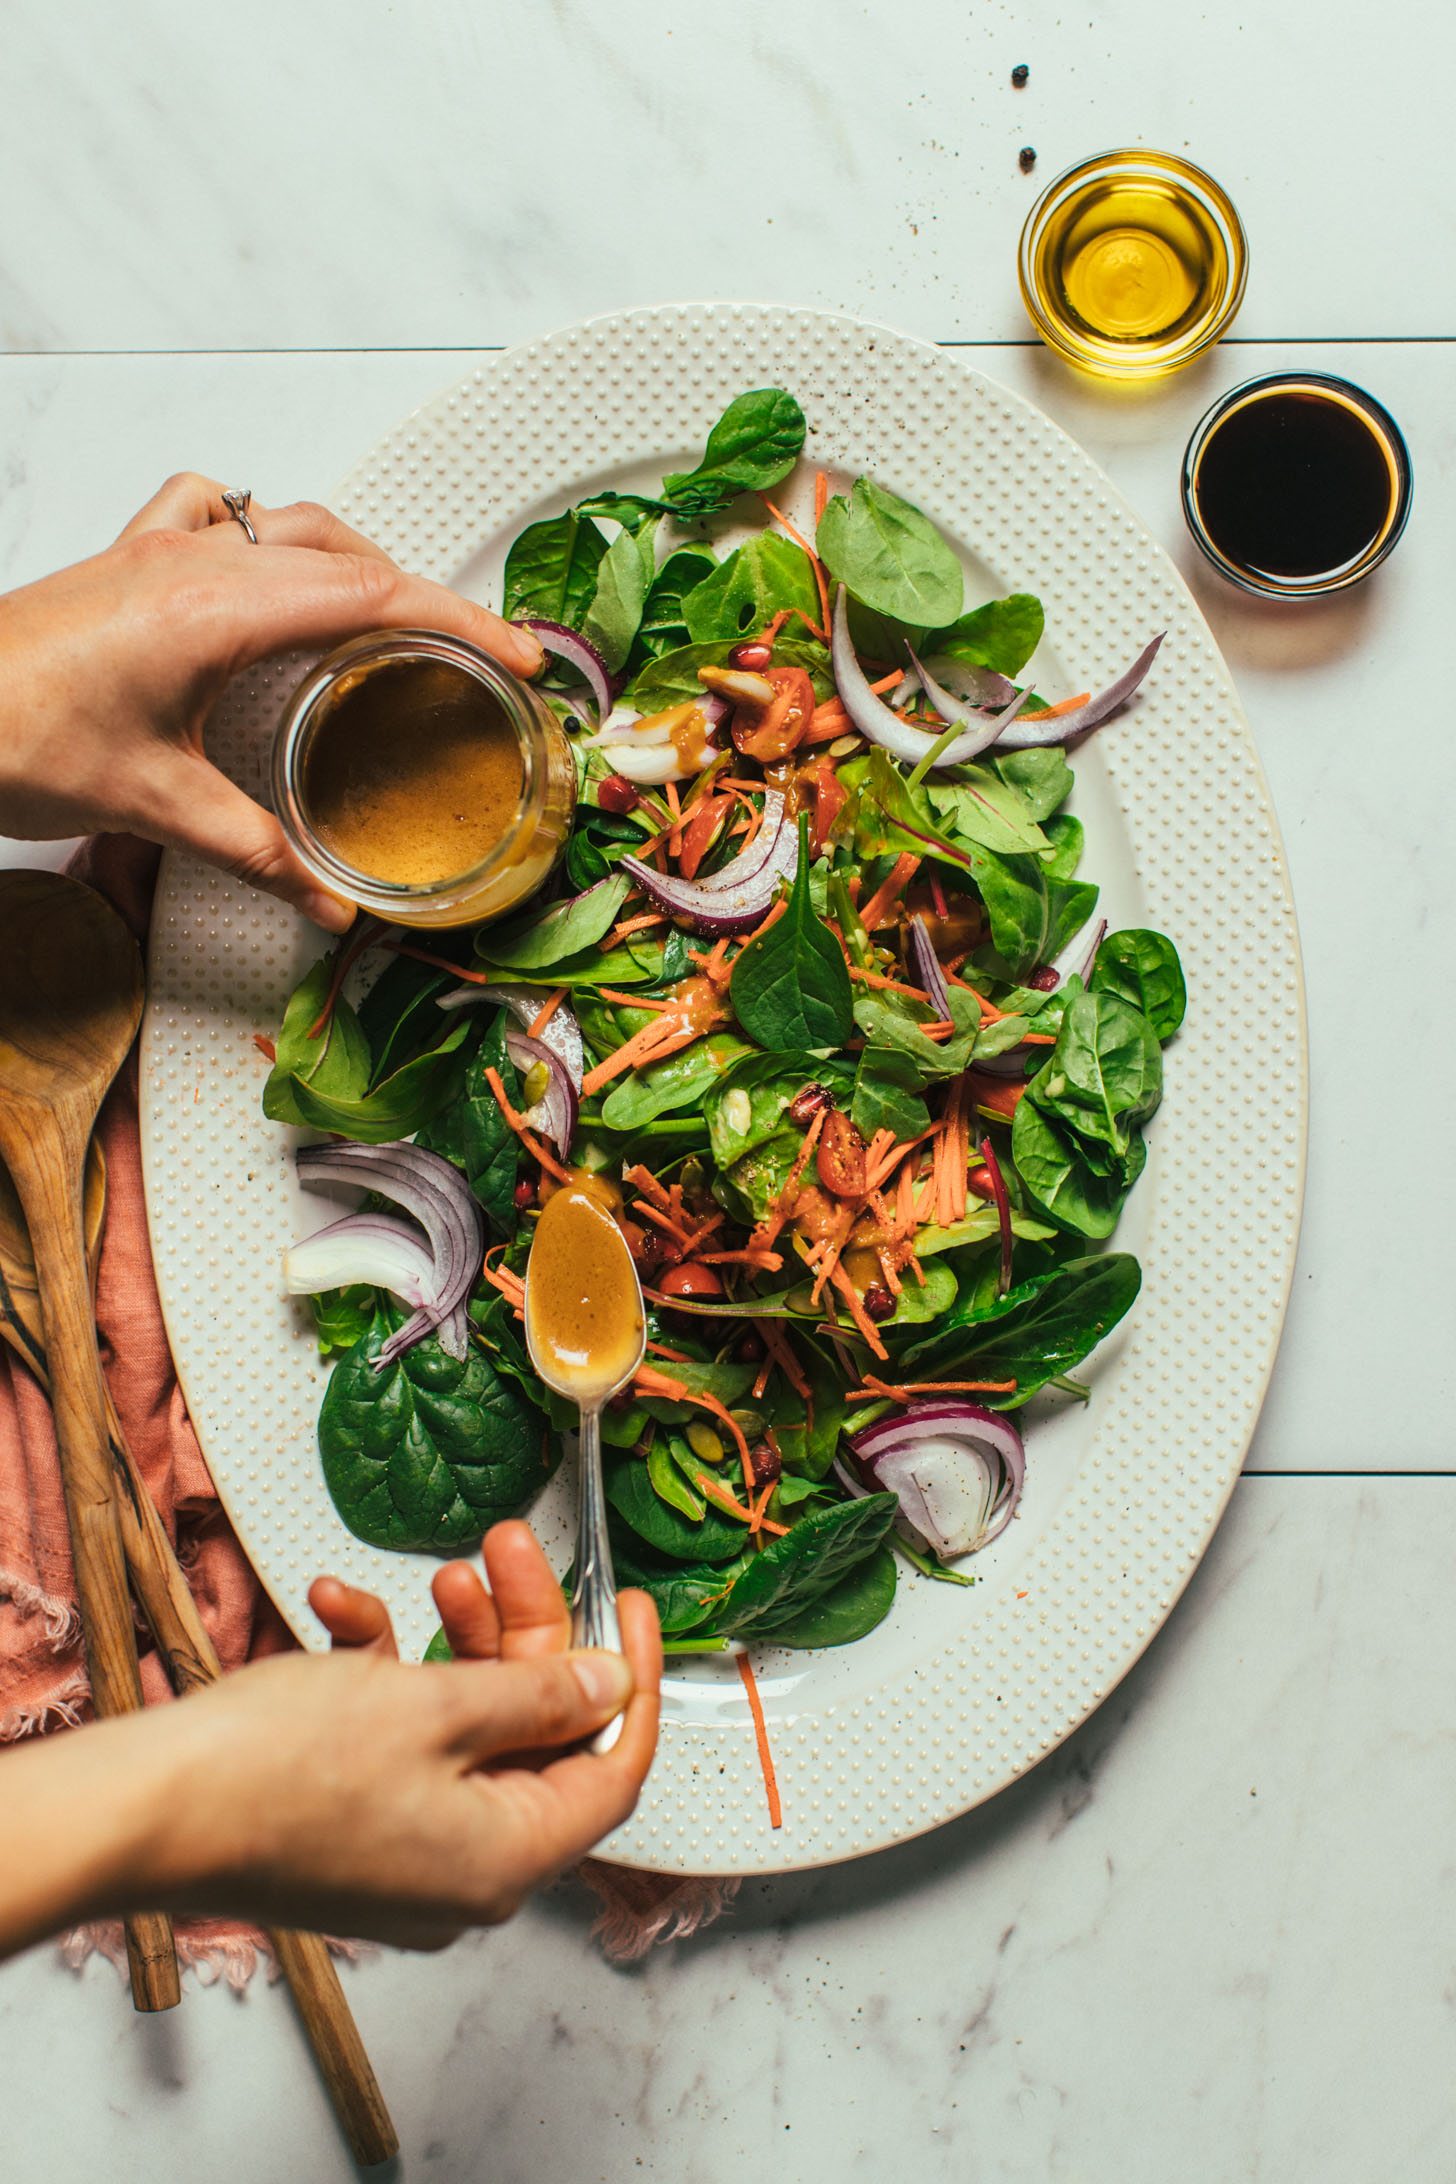 Holding a jar of dressing in one hand and using a spoon in the other hand to drizzle balsamic dressing on a salad